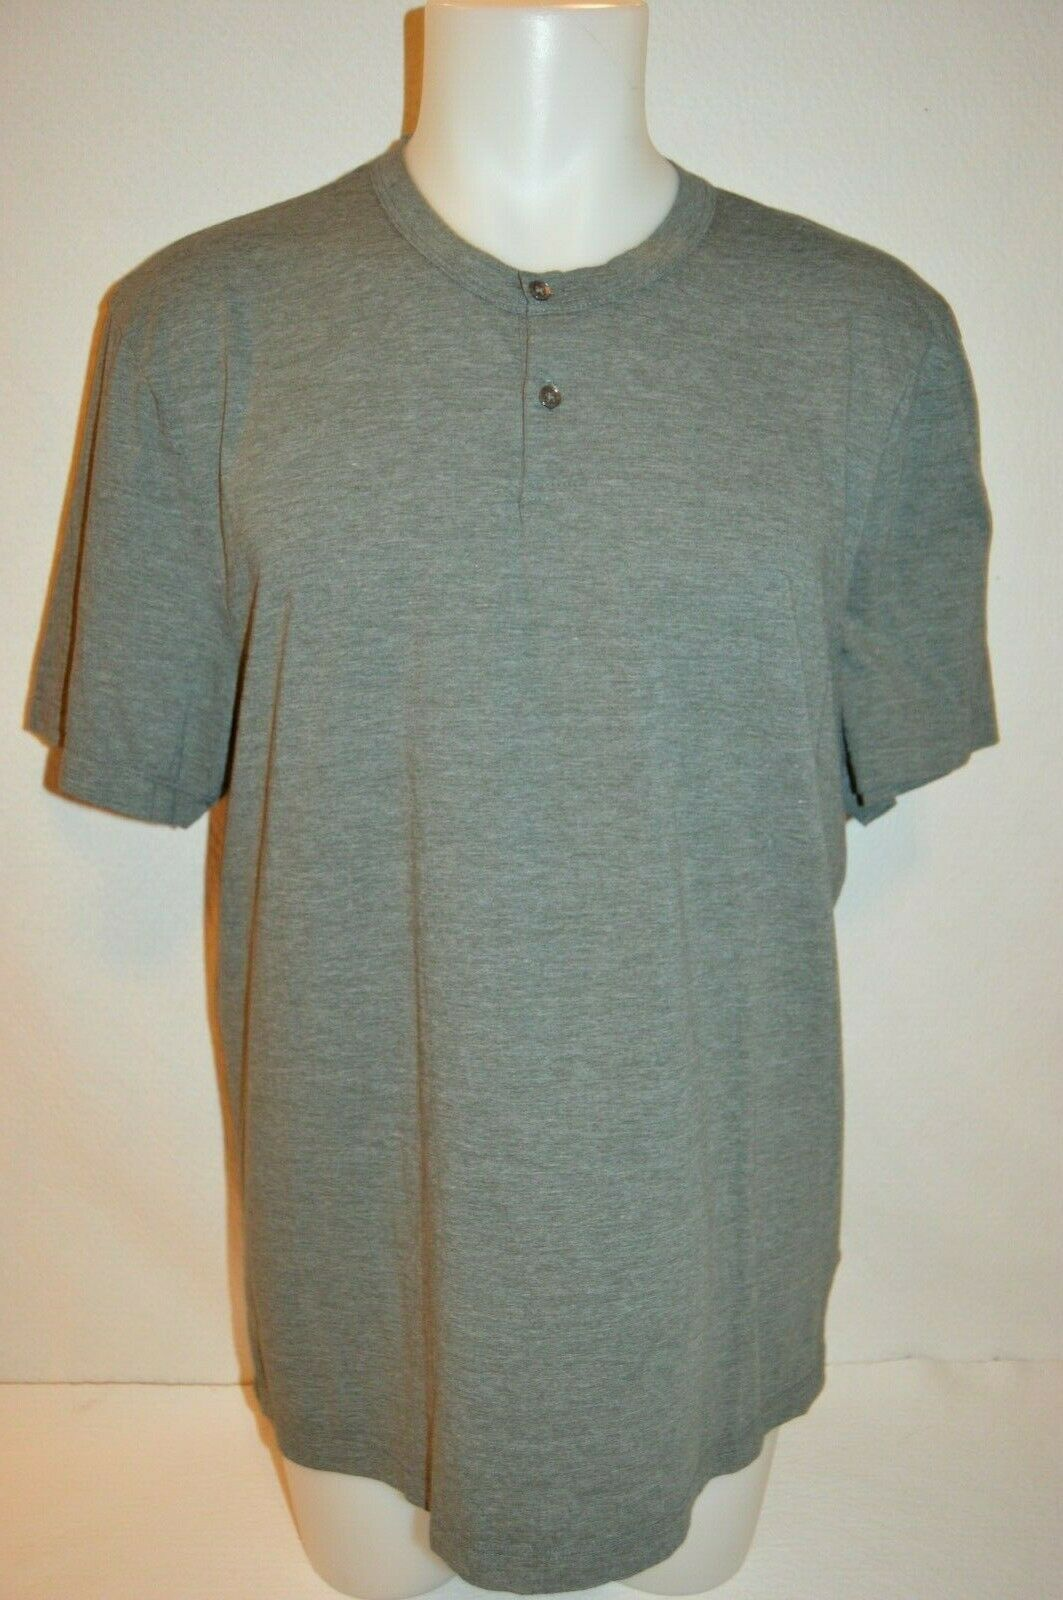 JAMES PERSE Man's Button Up T-Shirt NEW Size 4 X-Large  Made in USA